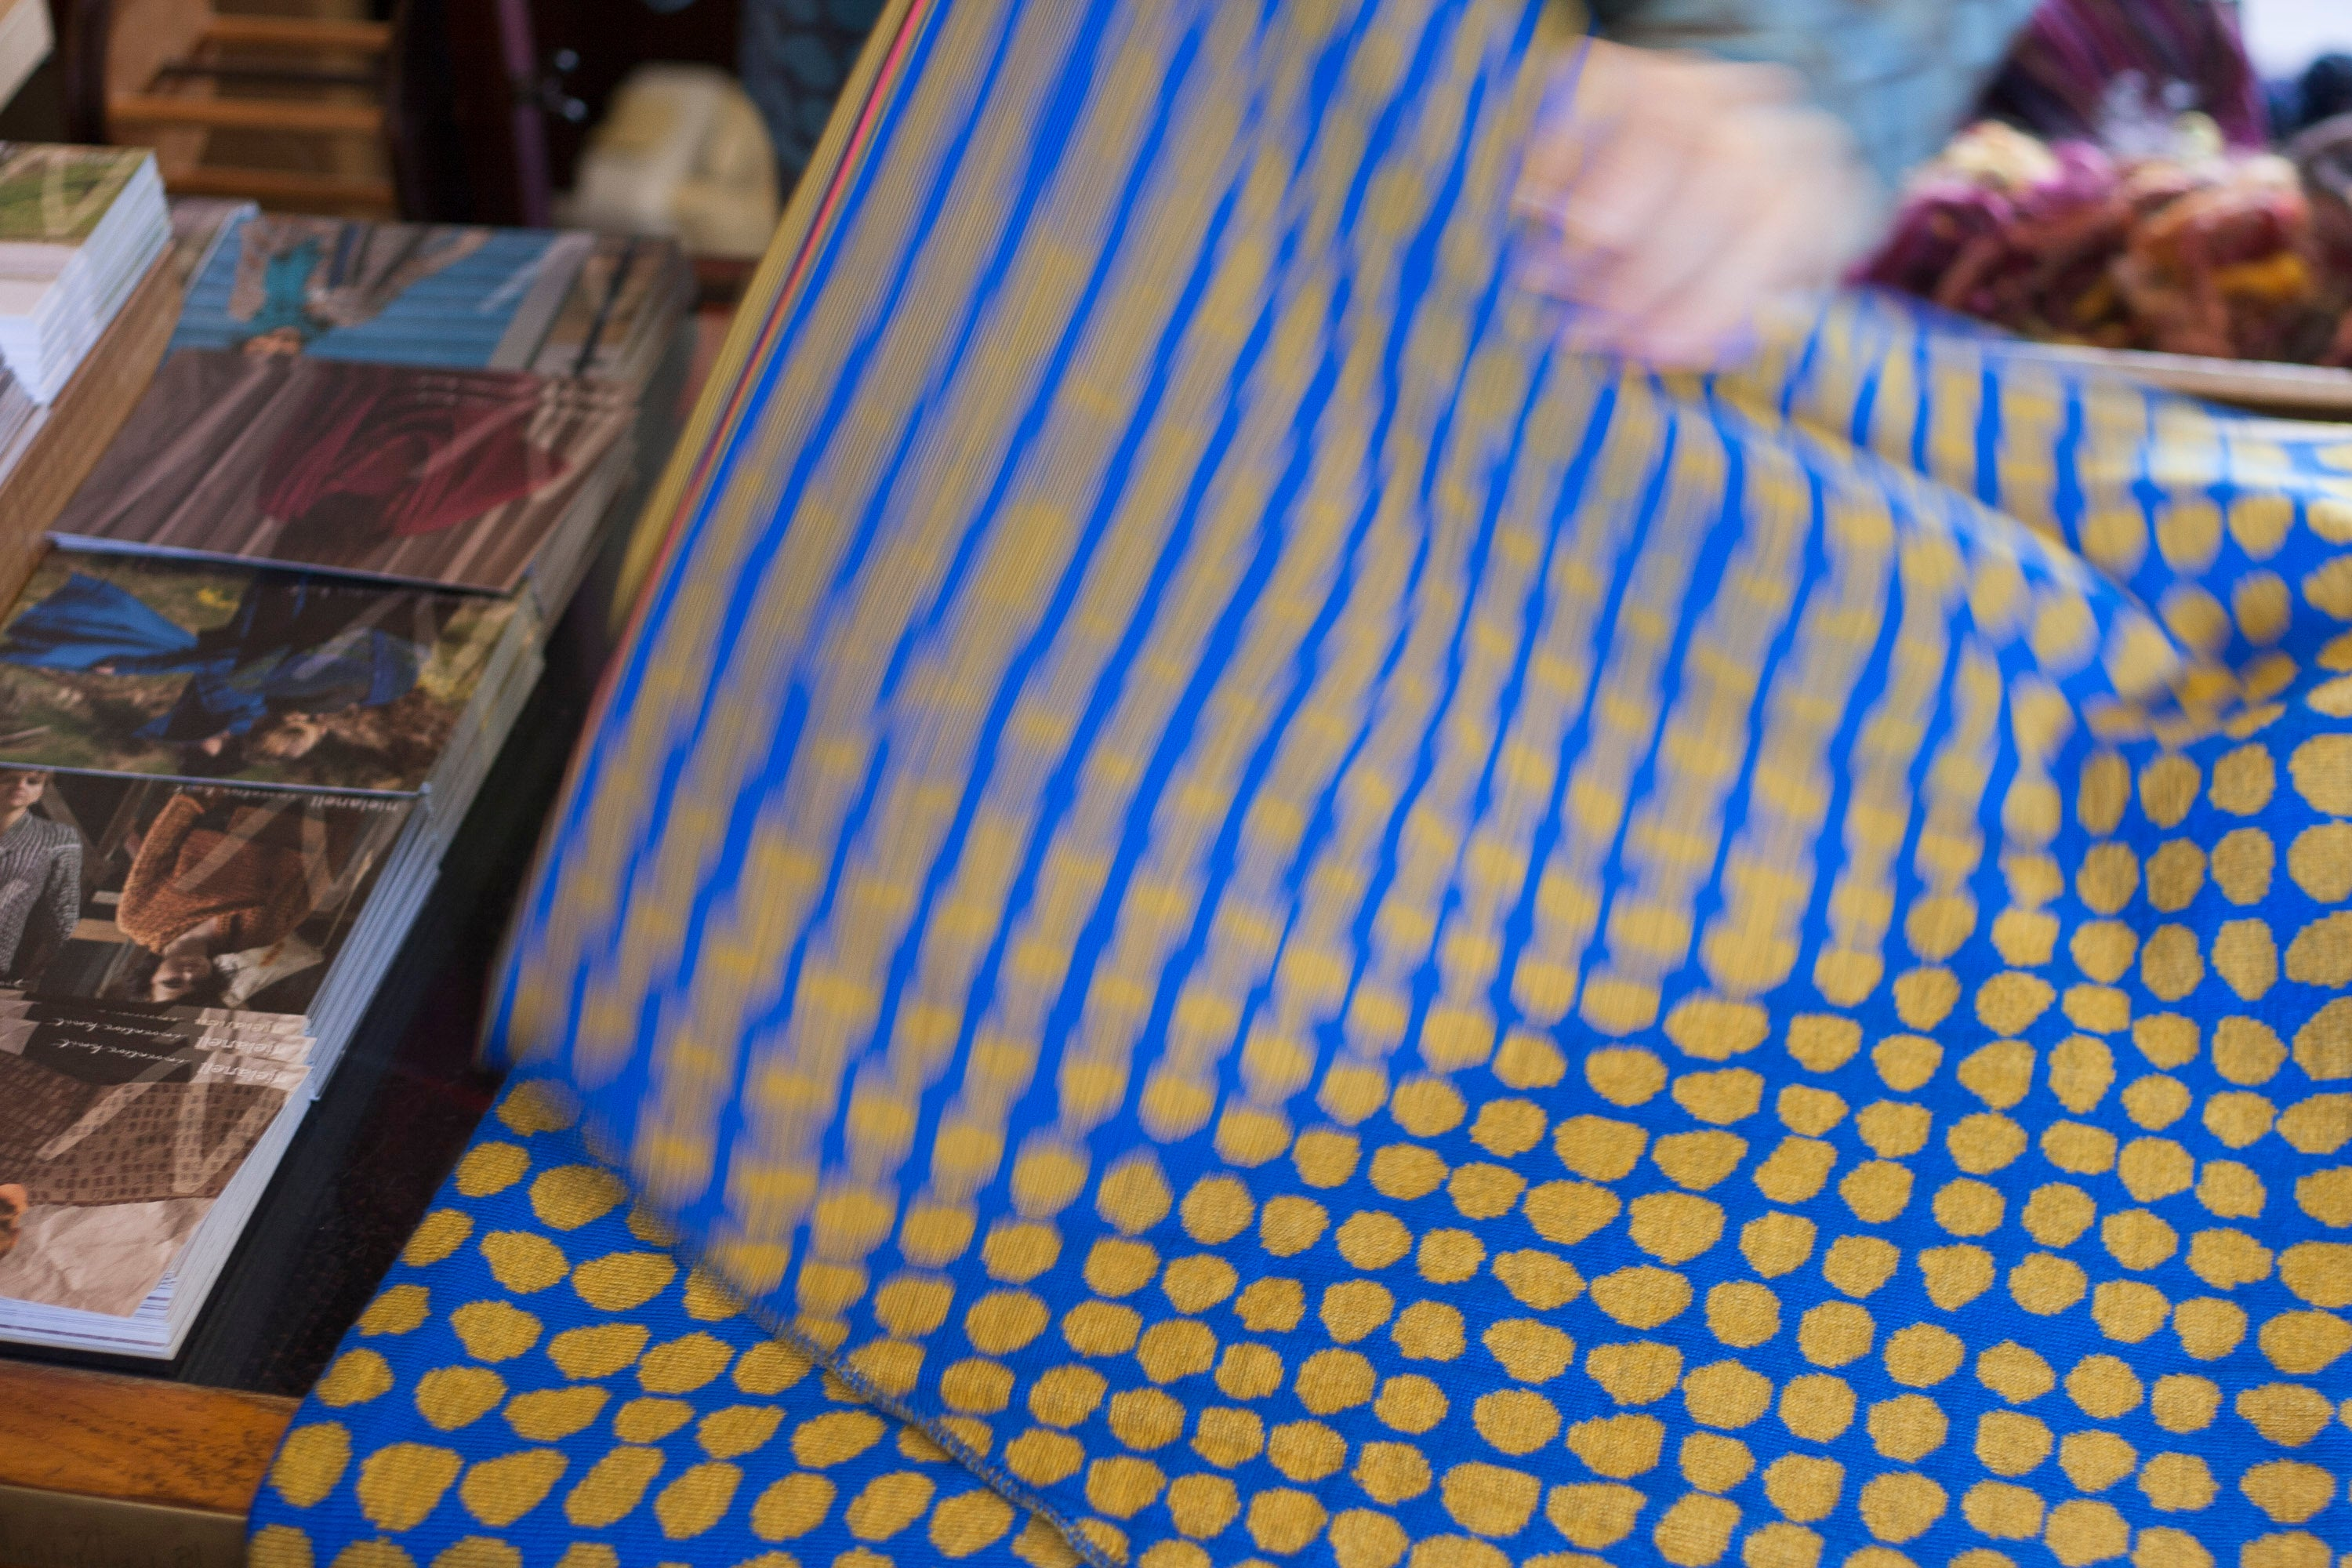 Folding a shawl in gold and blue irregular spot design on a shop counter. Hand visible and fabric in motion. At the Nielanell knitwear studio, Shetland